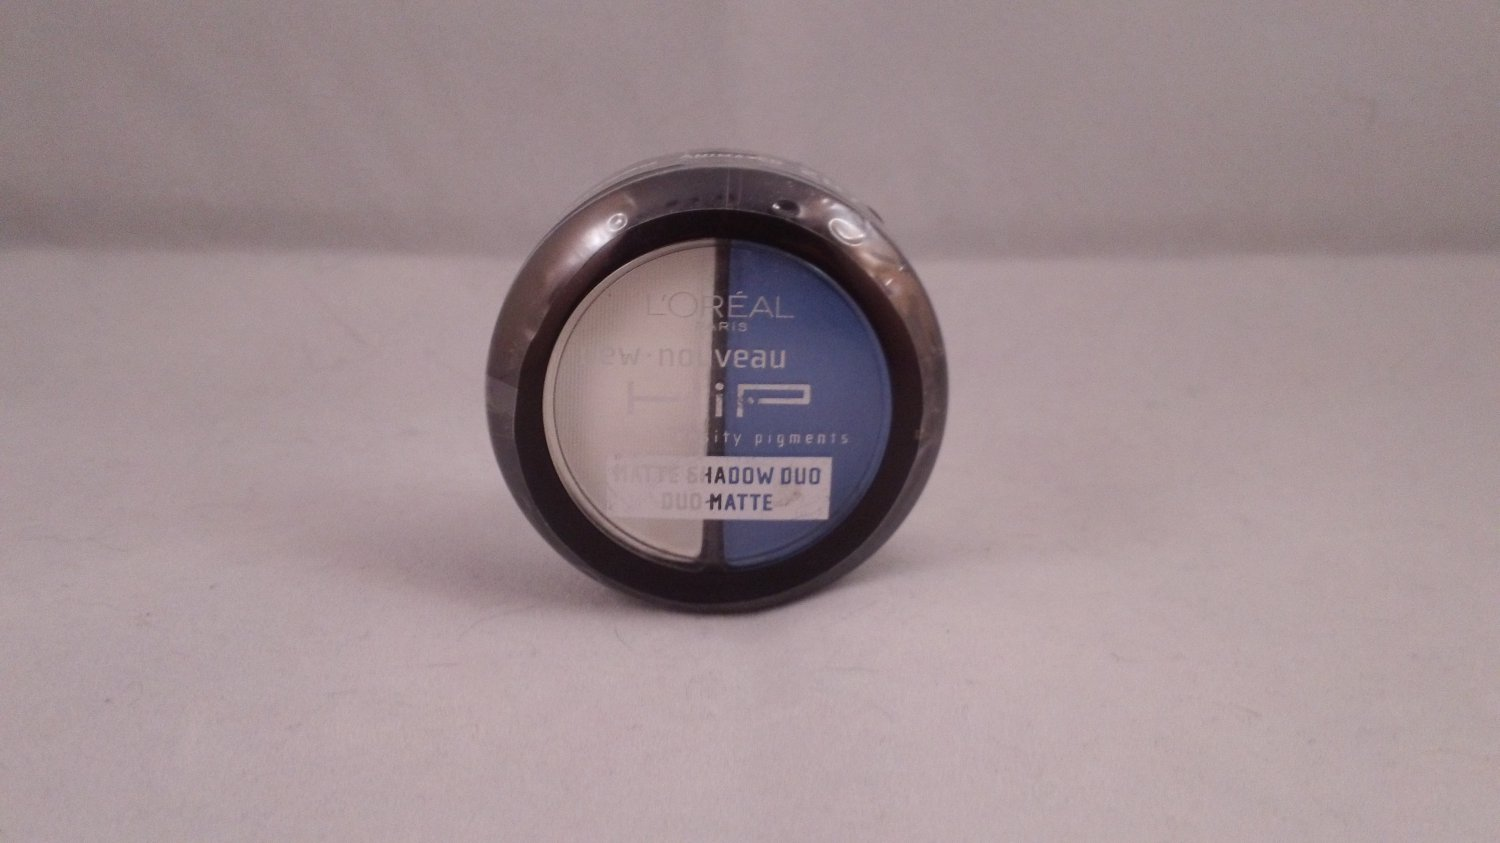 L'Oreal HiP high intensity pigments Matte Shadow Duo eyeshadow eye Animated